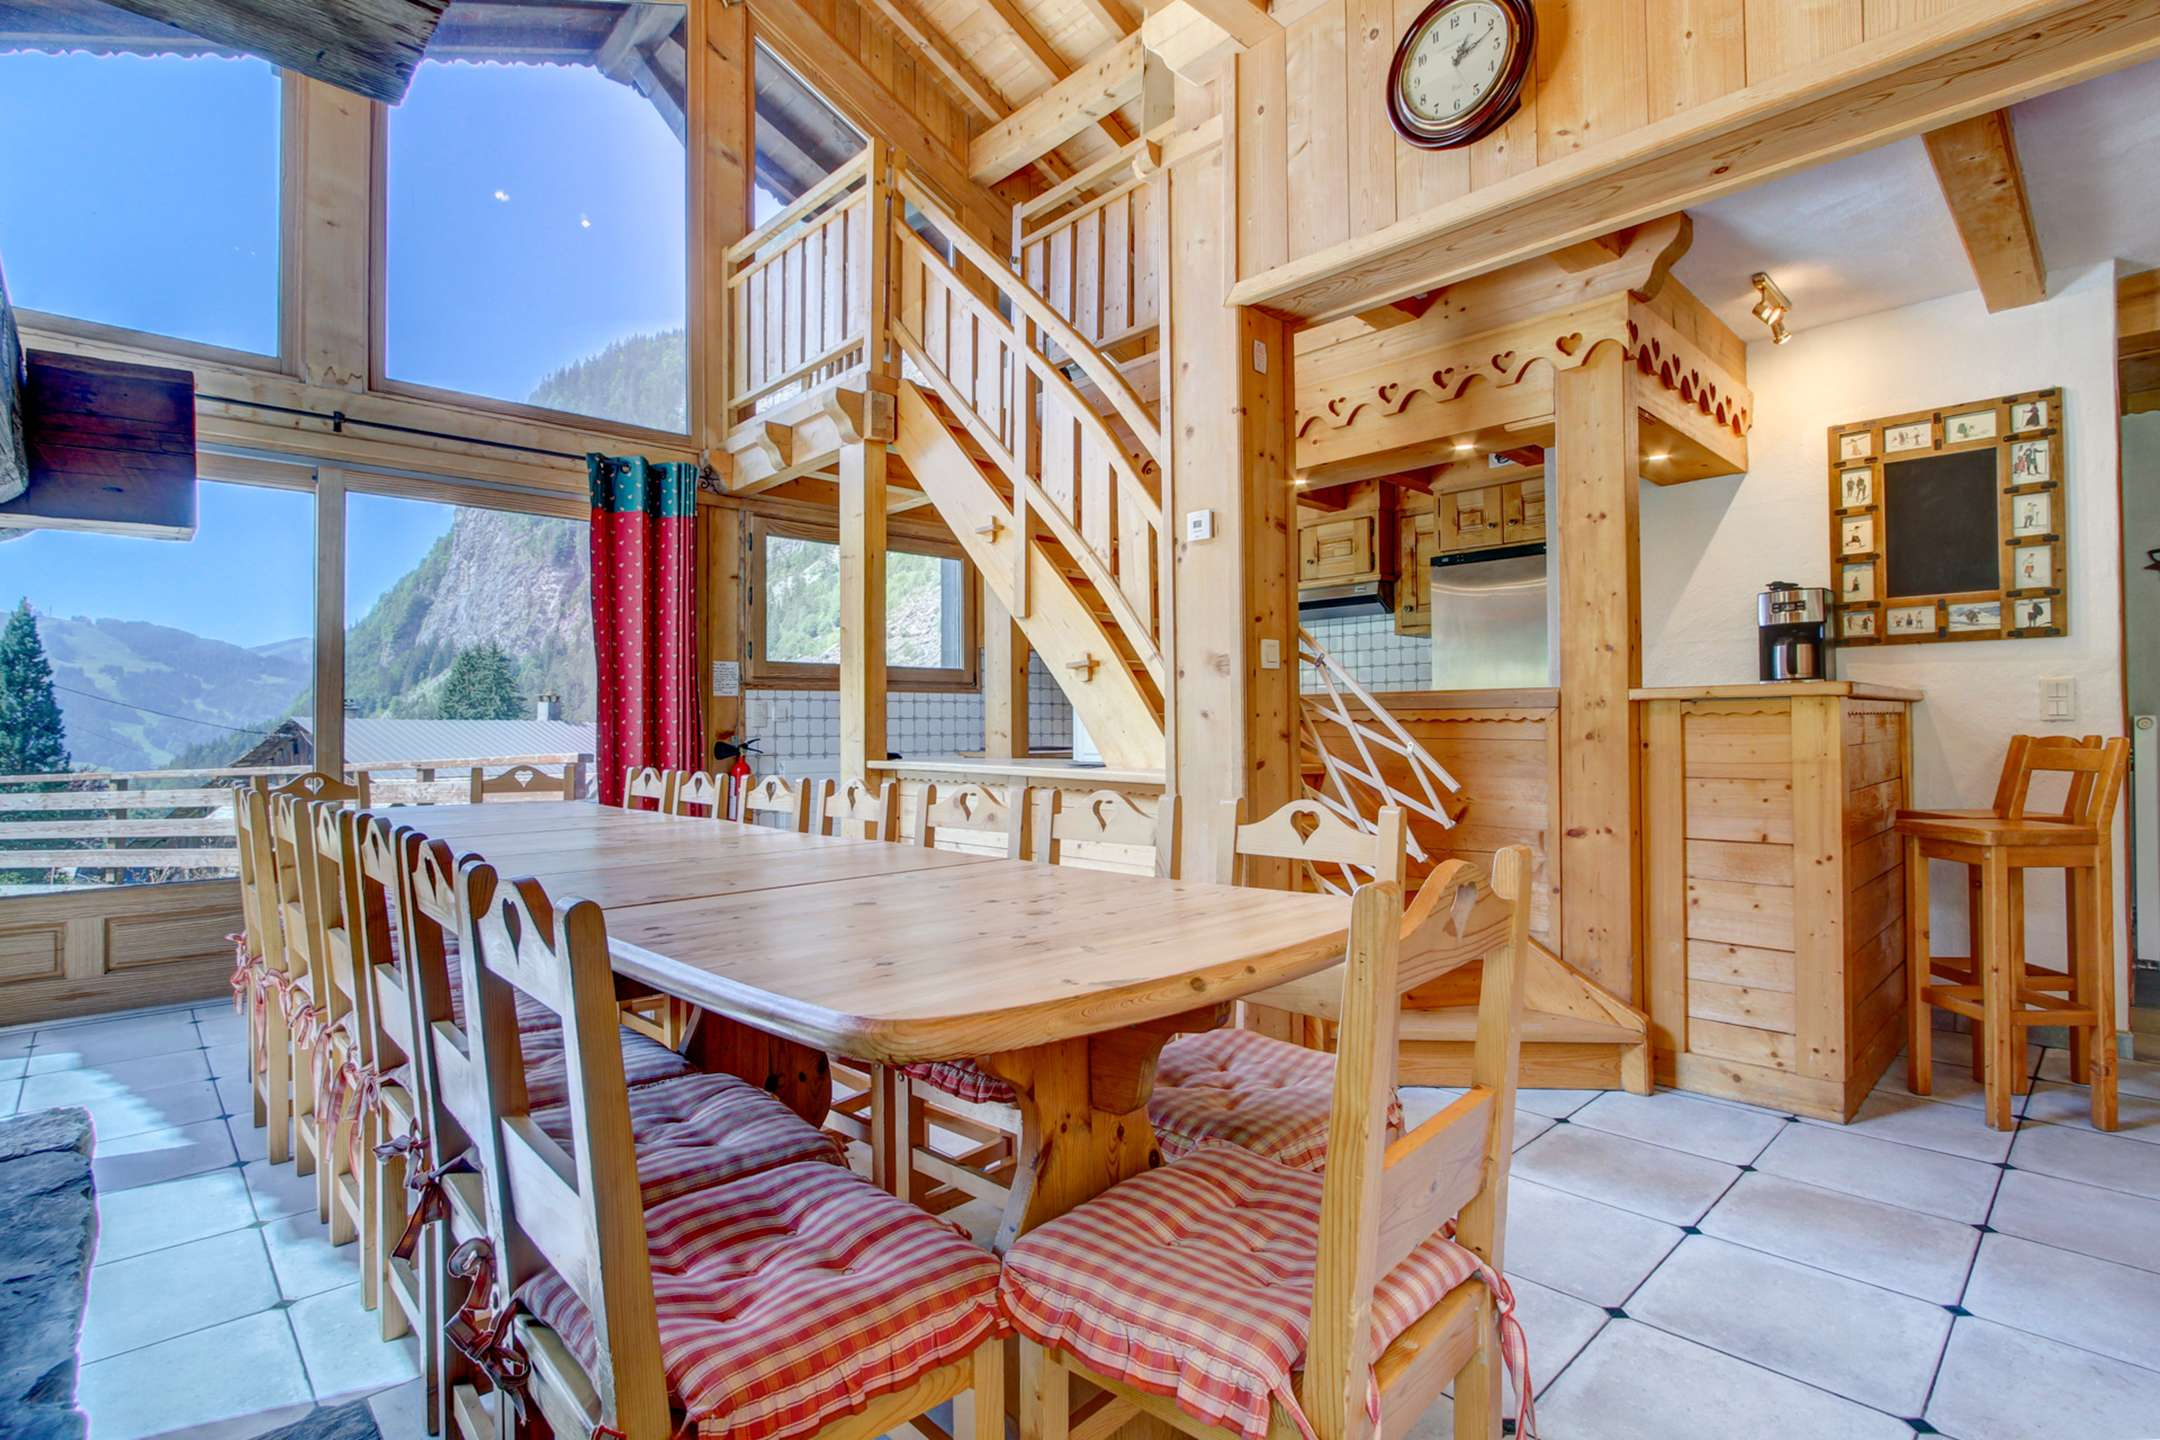 Chalet De Loisir Habitable rental ski resort property in french alps - morzine immobilier